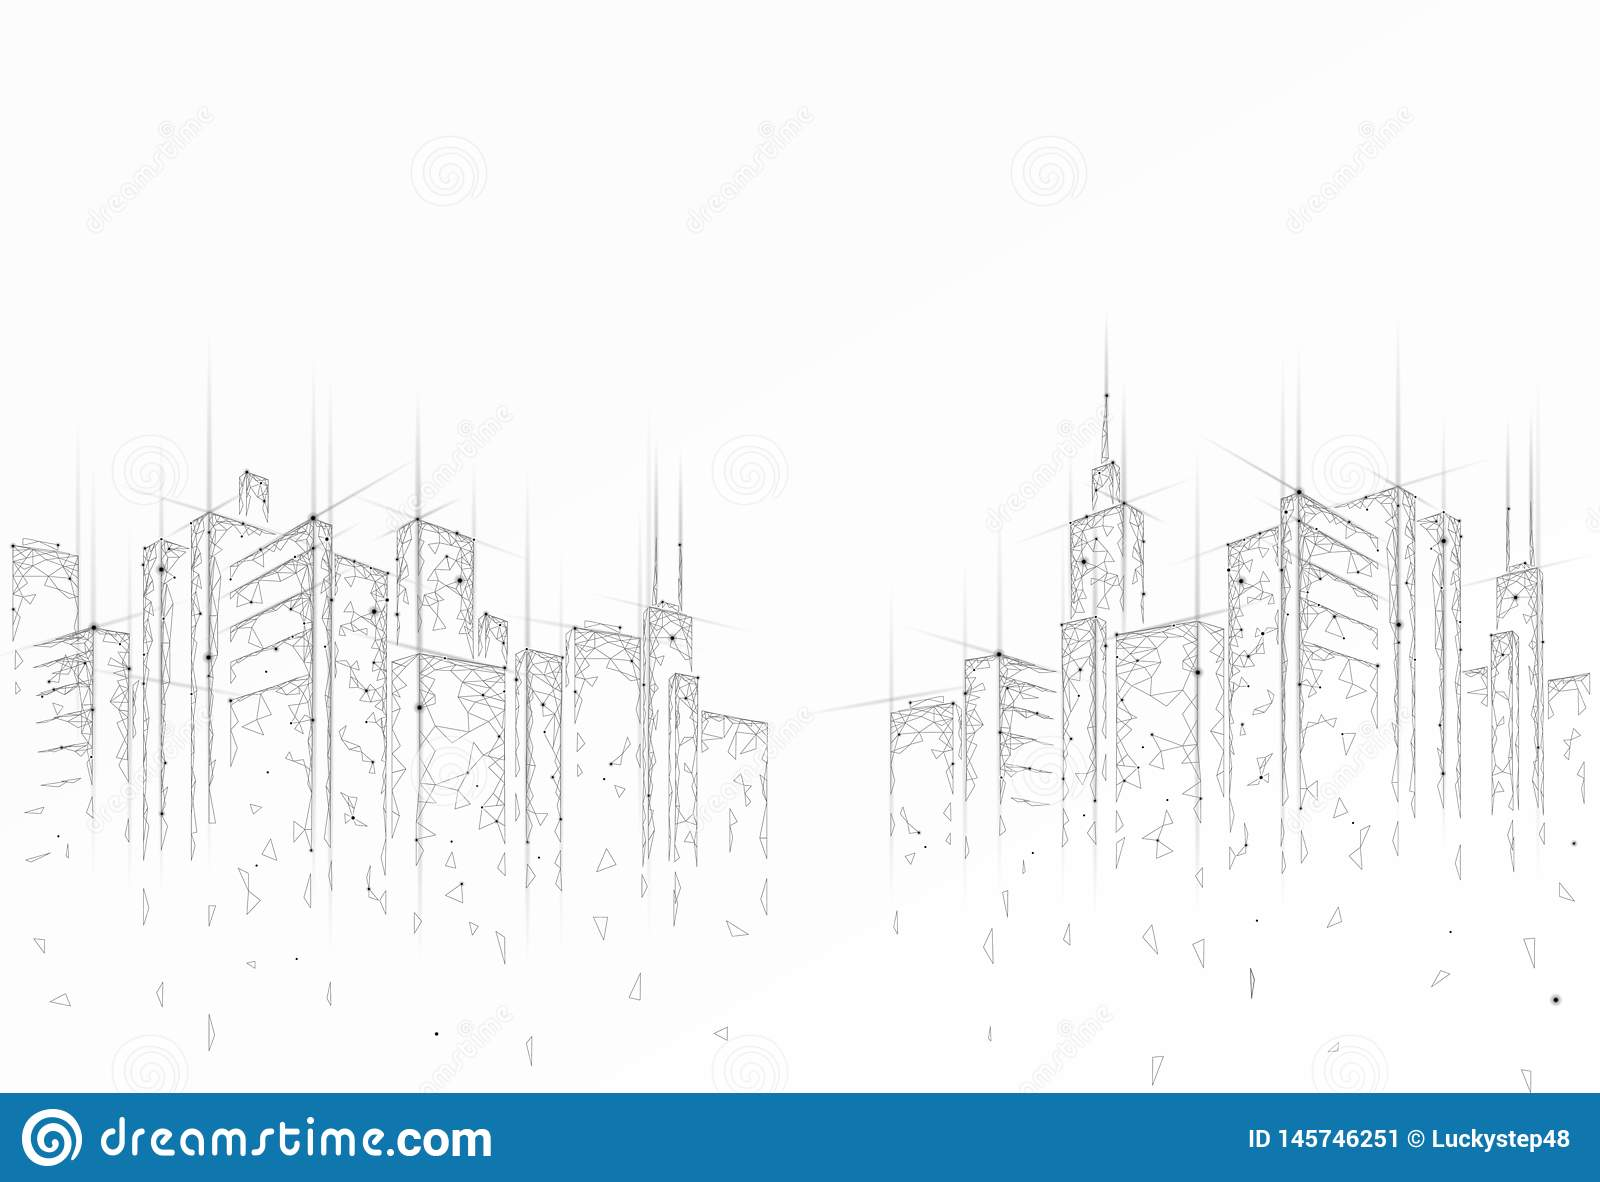 Low poly smart city 3D wire mesh. Intelligent building automation system business concept. High skyscrapers border